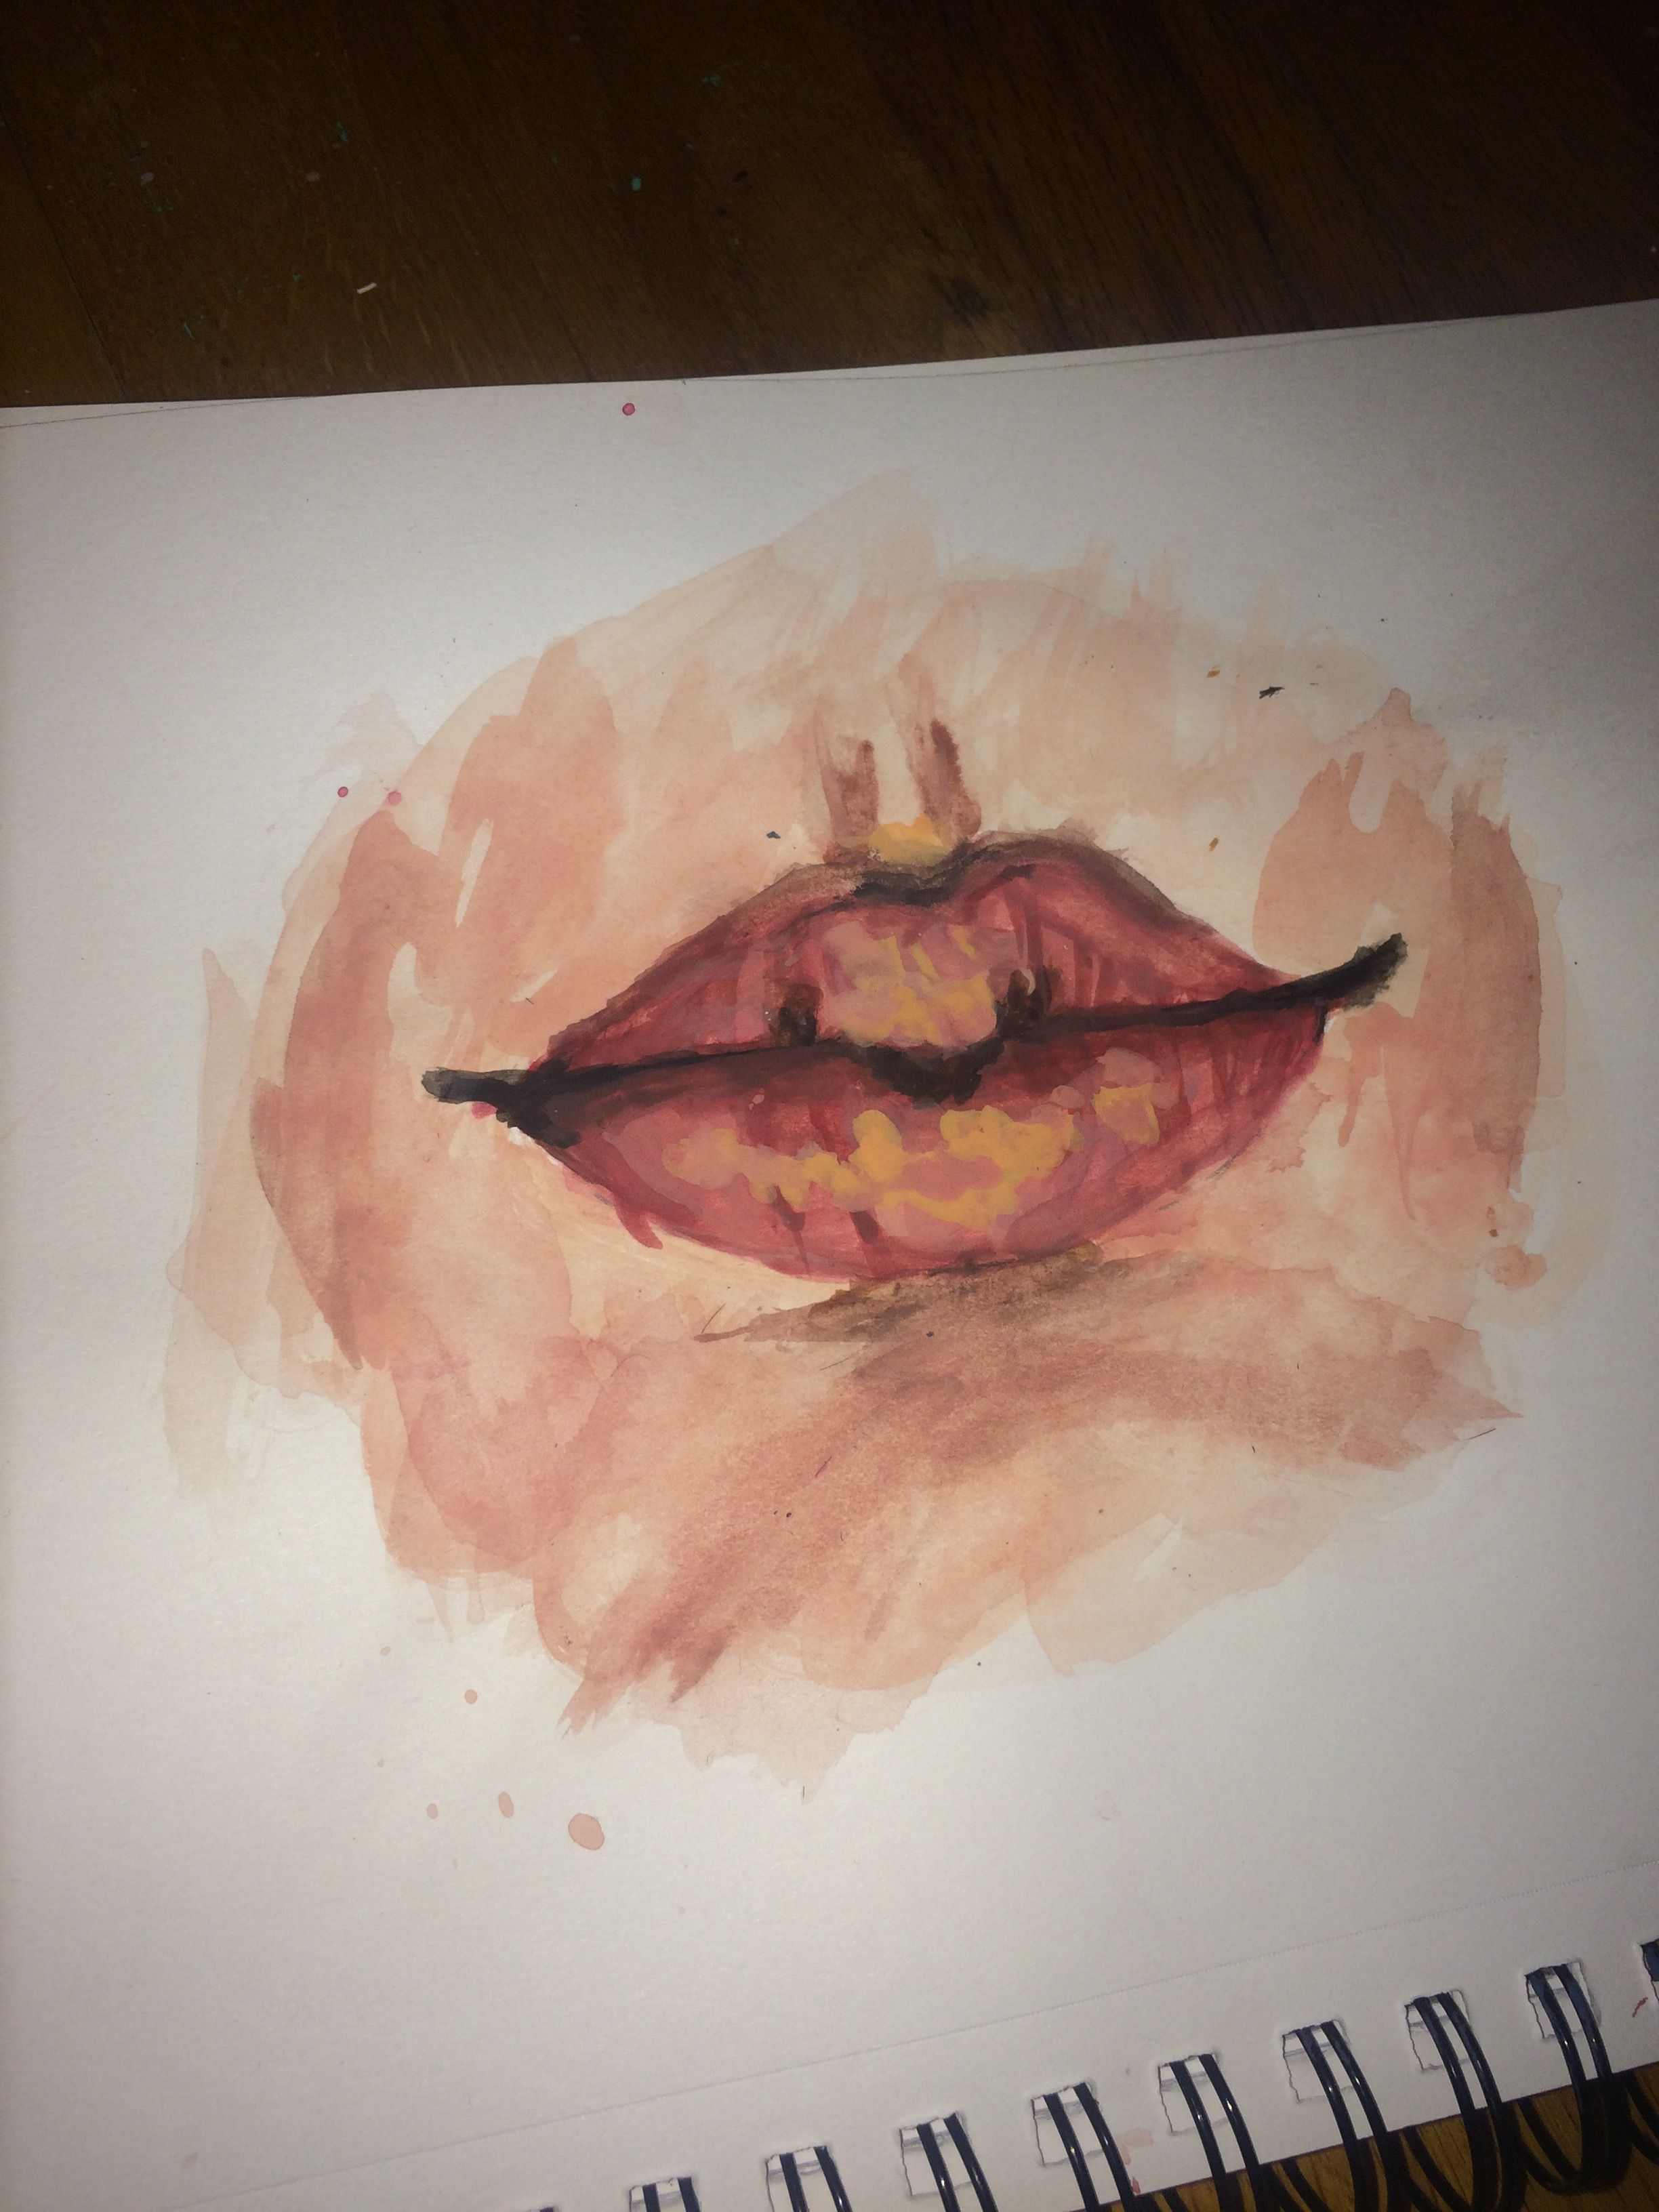 Art Painted Lips Made With Watercolors Painting Drawing Aesthetic Skin Artsy Artistic Tumblr Artsy Art Painting